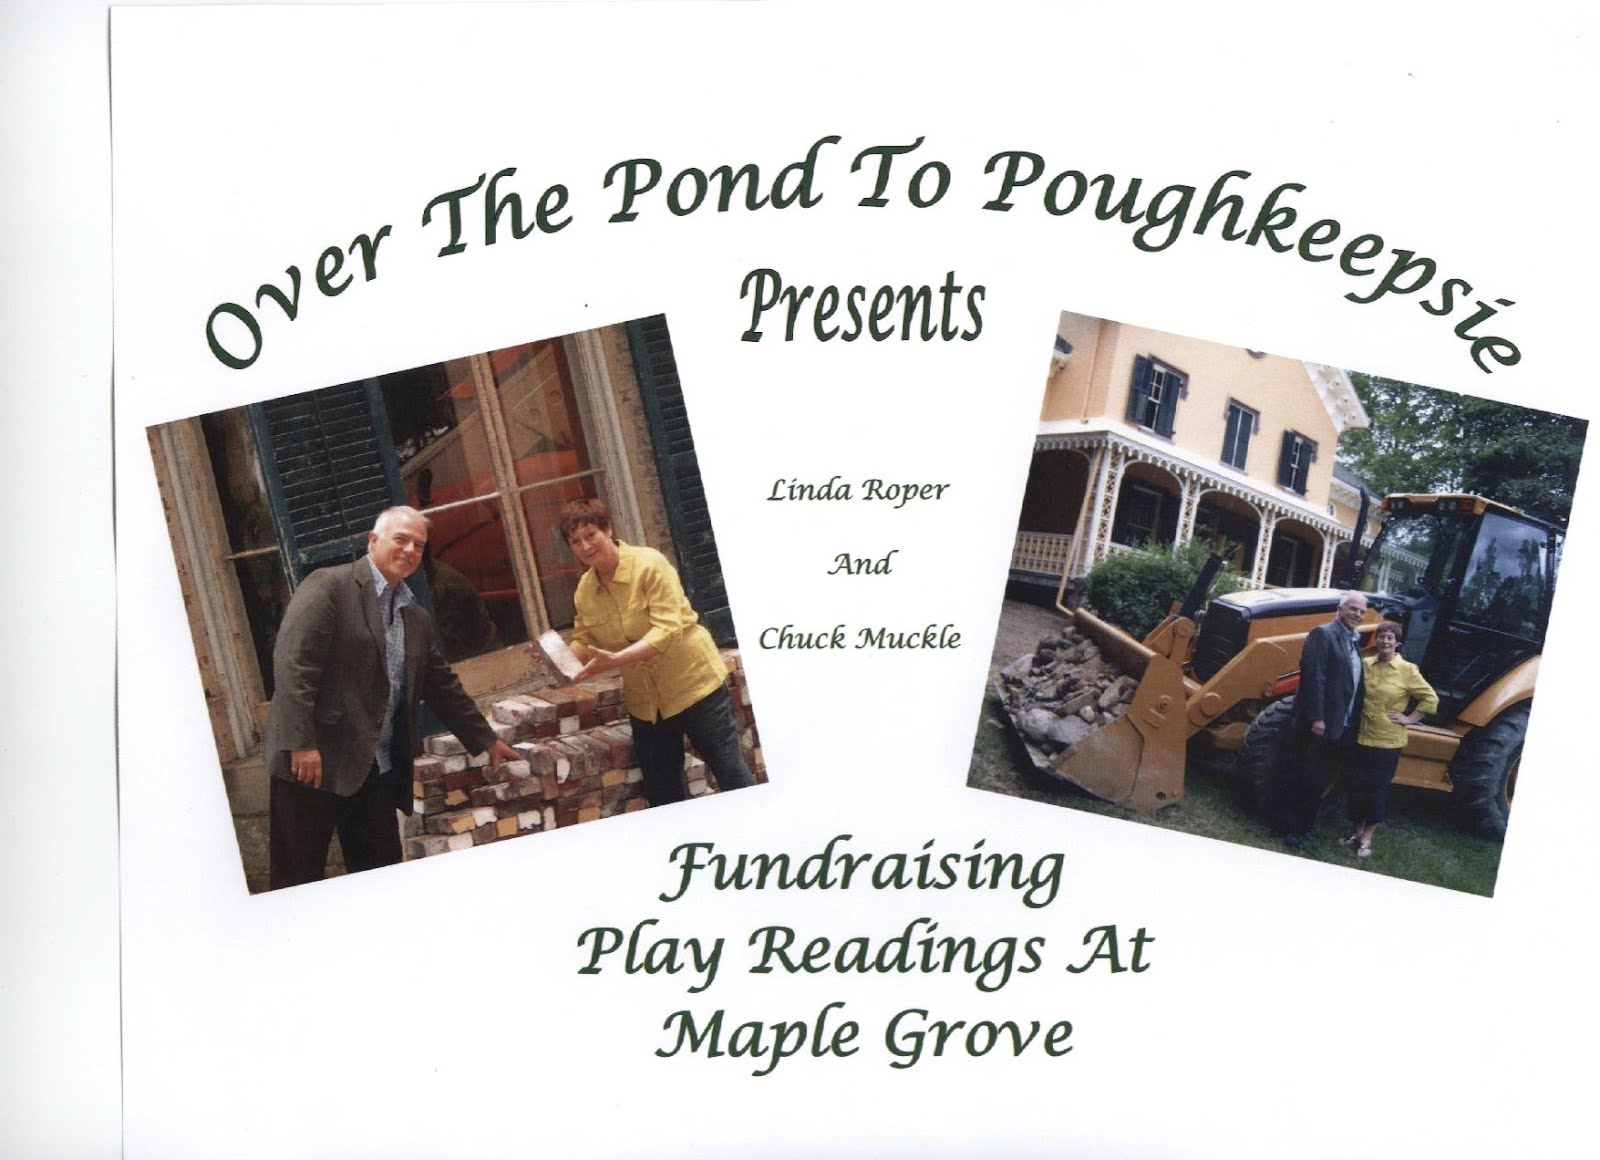 Ask me about Play Reading fundraisers for historic houses!